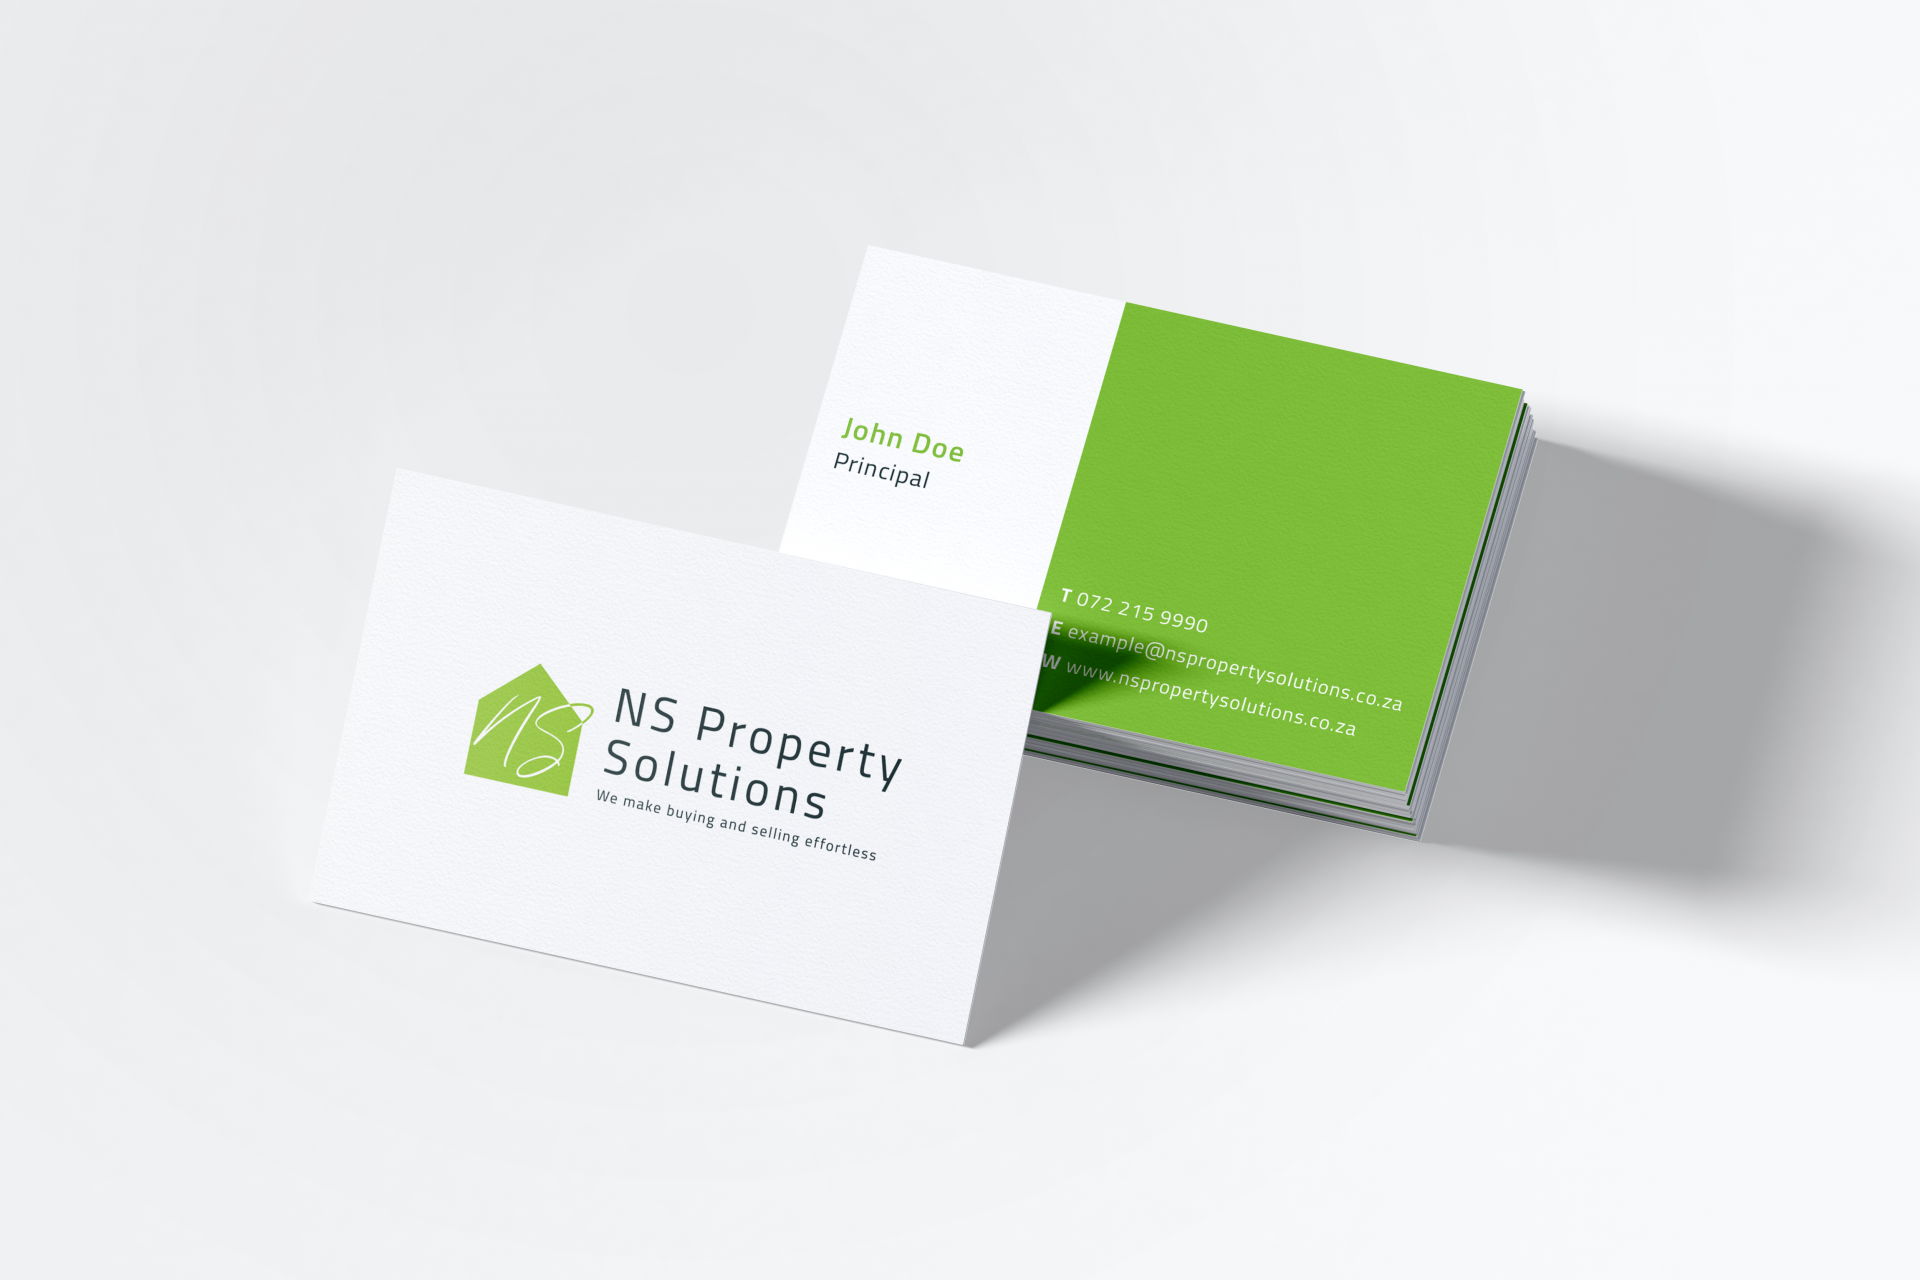 NS Property Solutions